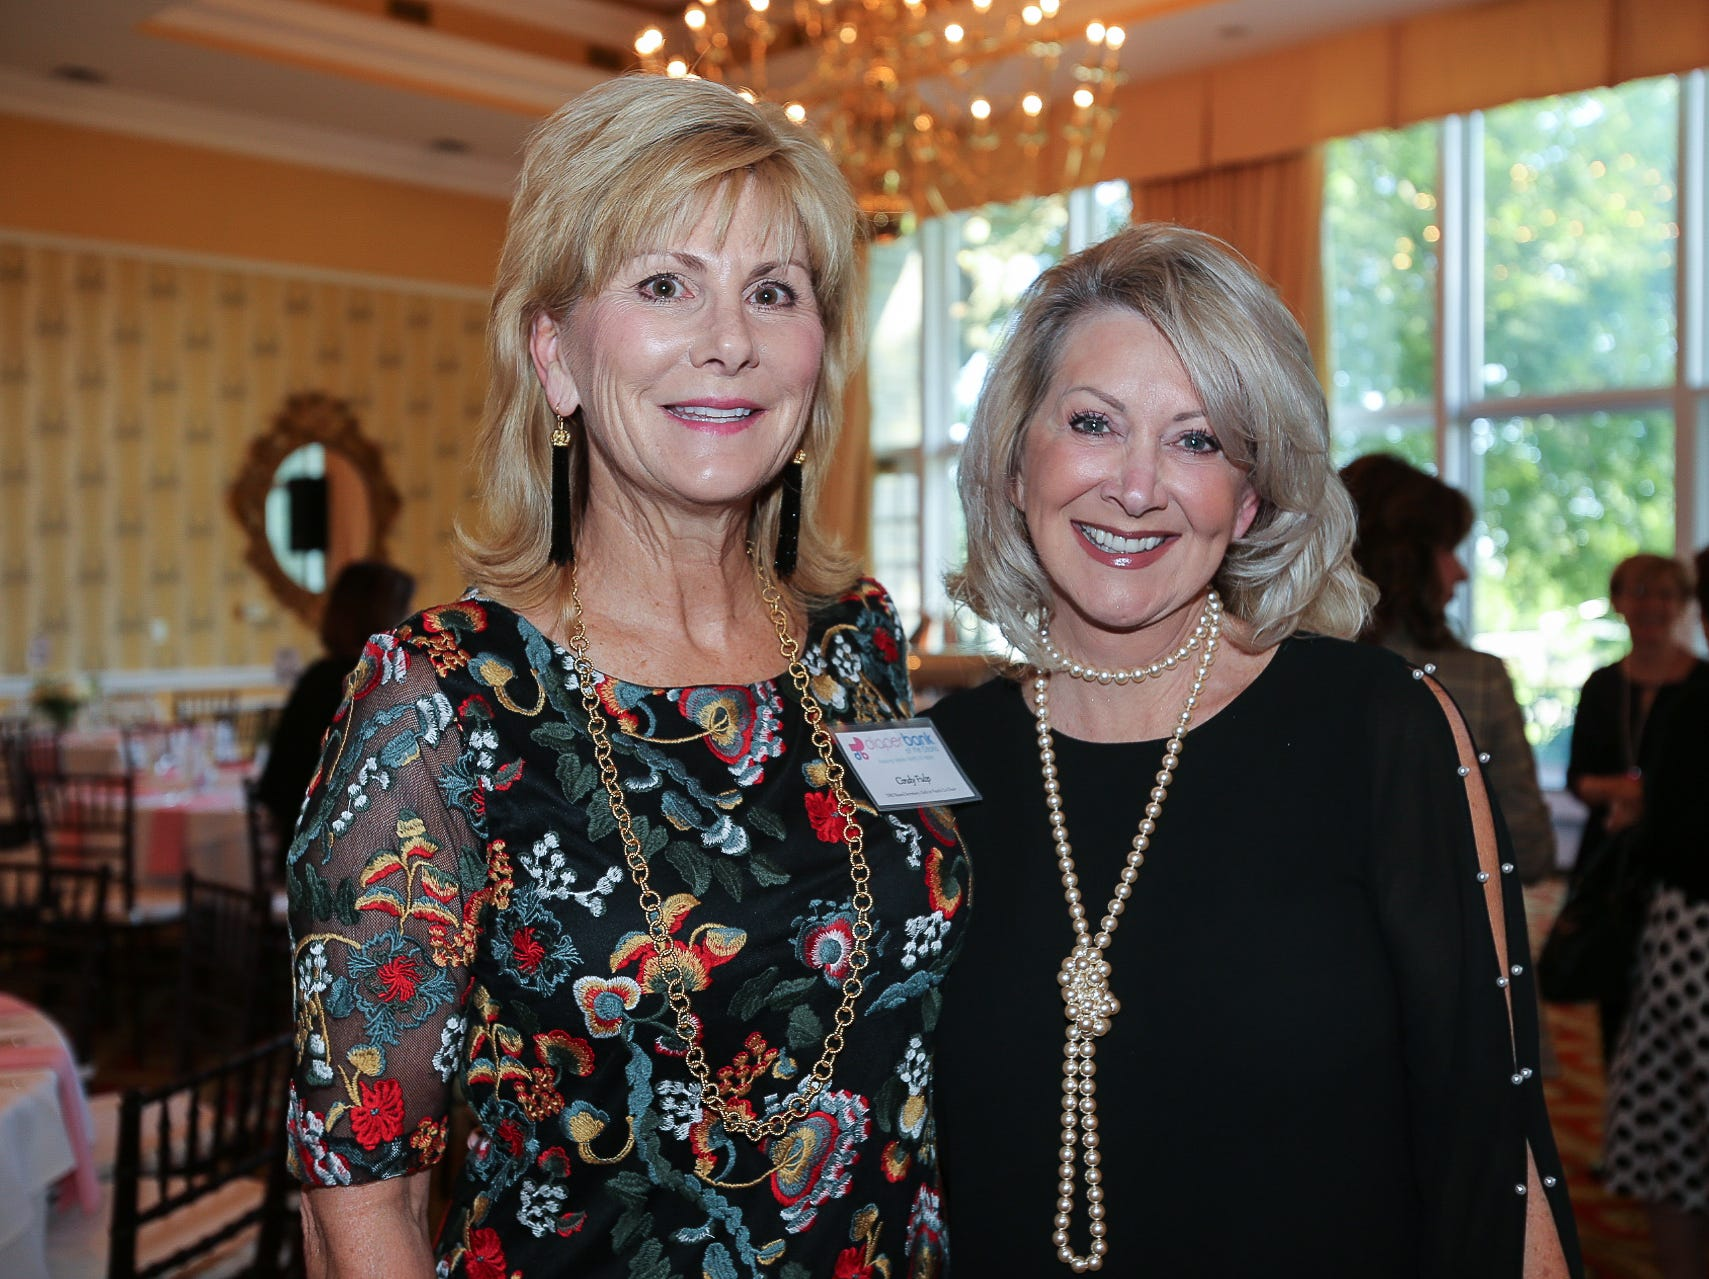 Cindy Fulp and Tracy Lipscomb